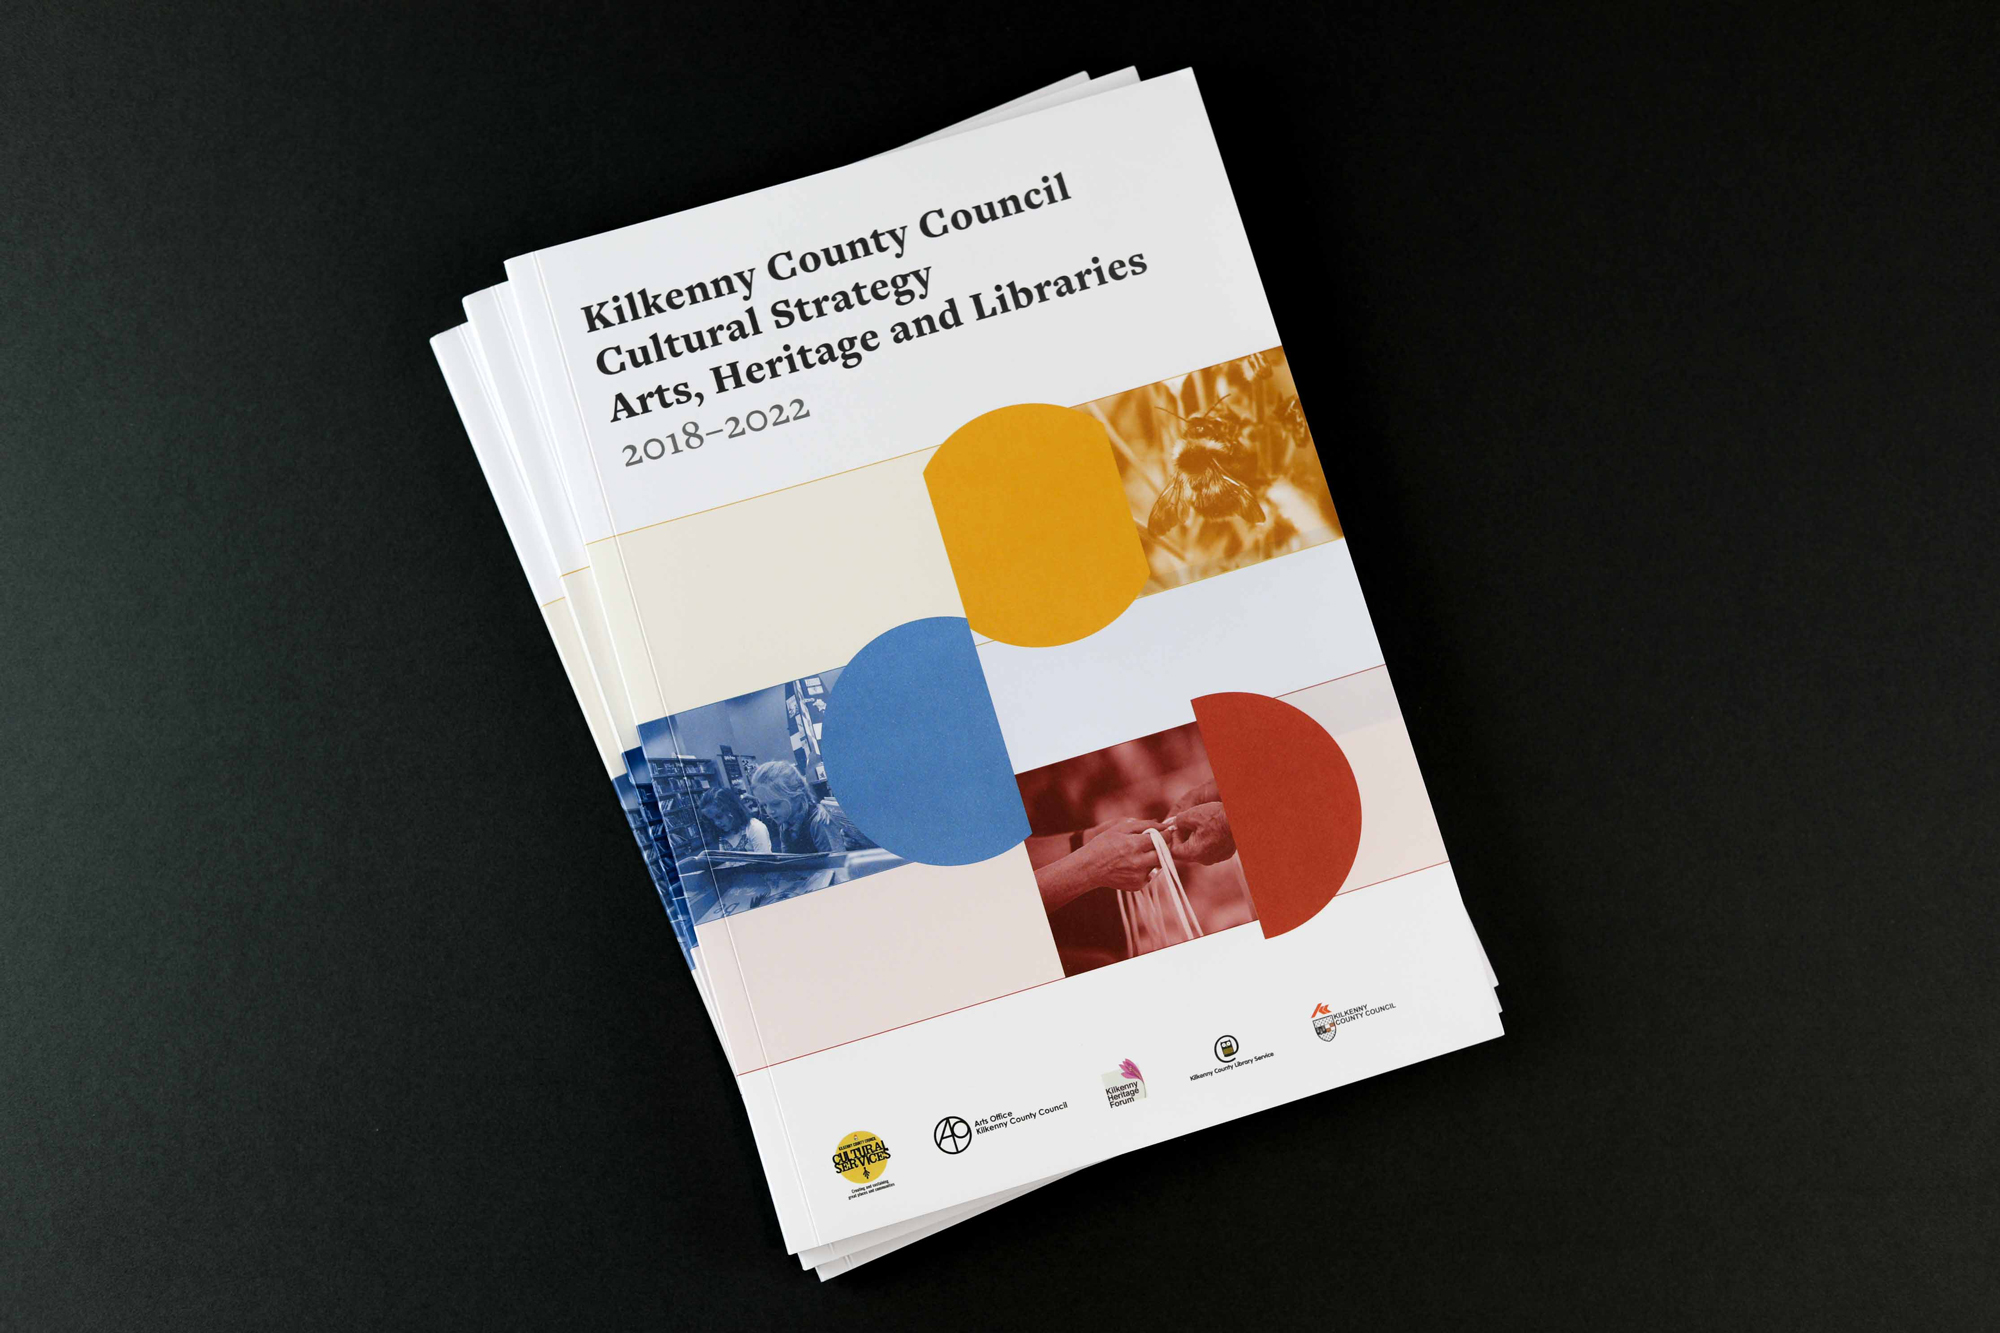 Cover image: Kilkenny County Council Cultural Strategy